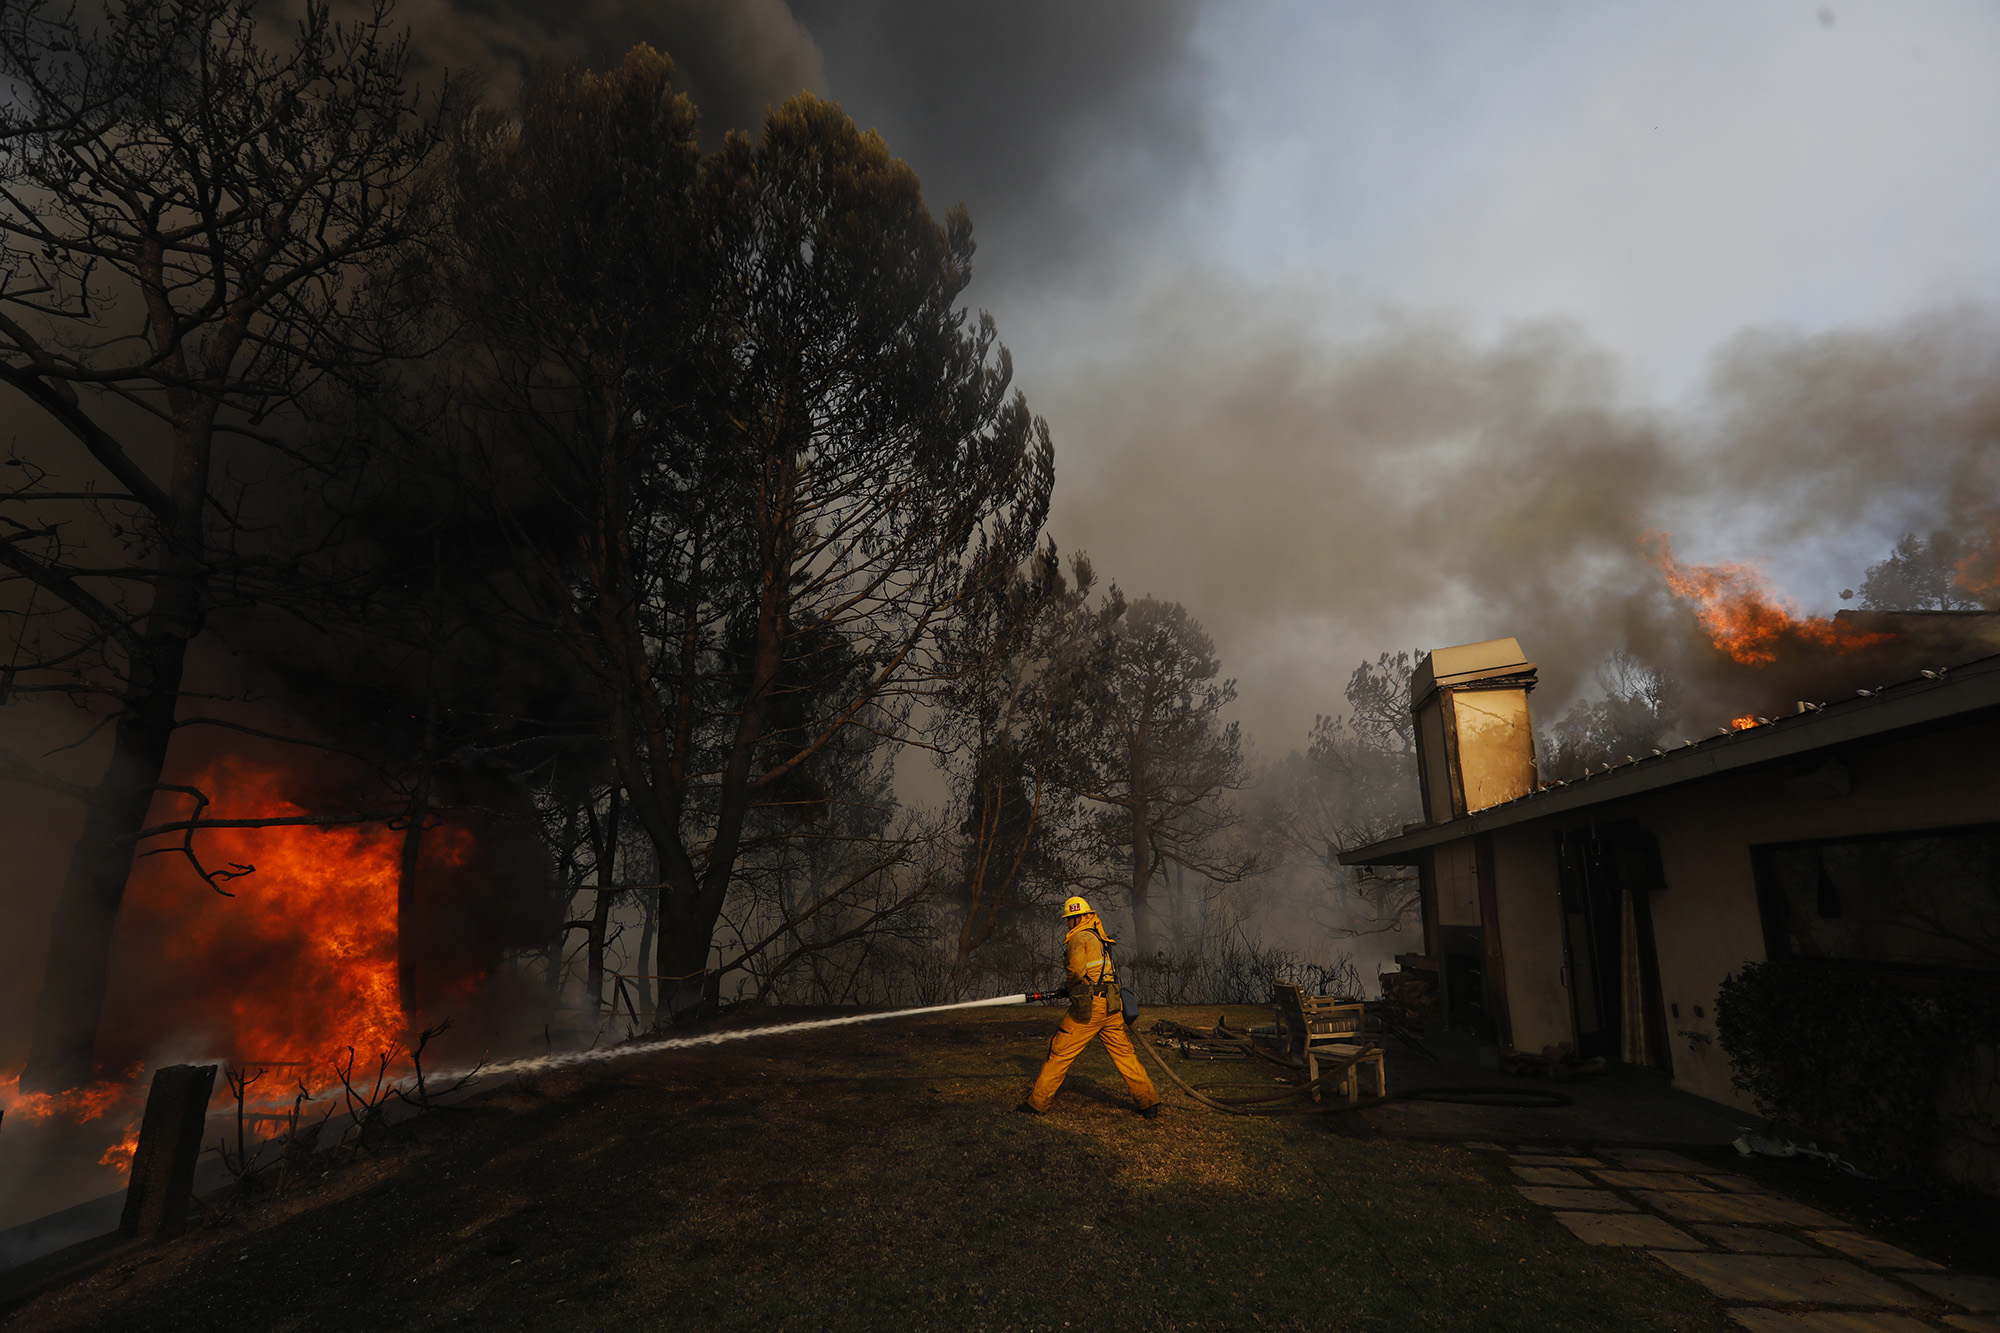 Celebs Forced to Flee the Los Angeles Wildfire